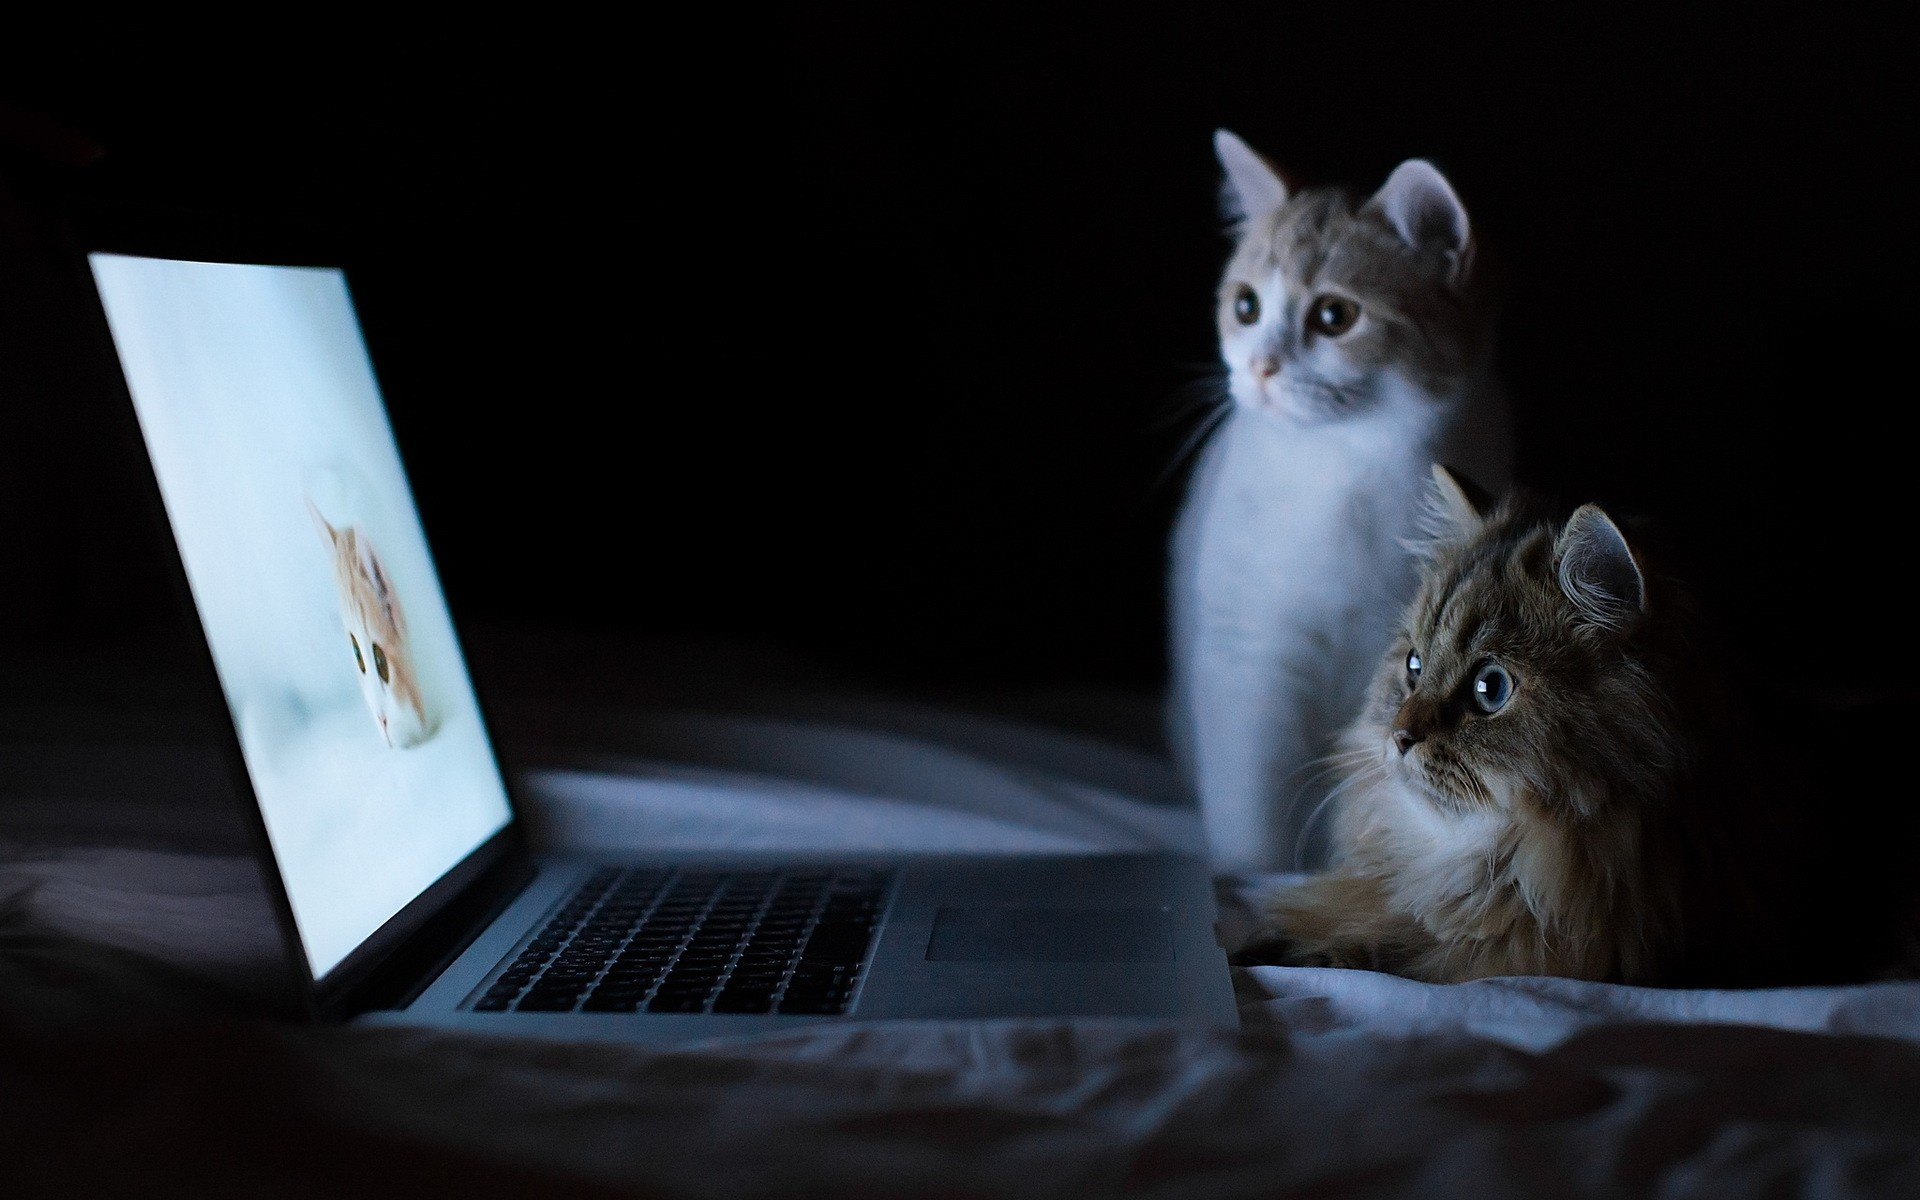 HD-Cats-and-Laptop-Wallpaper